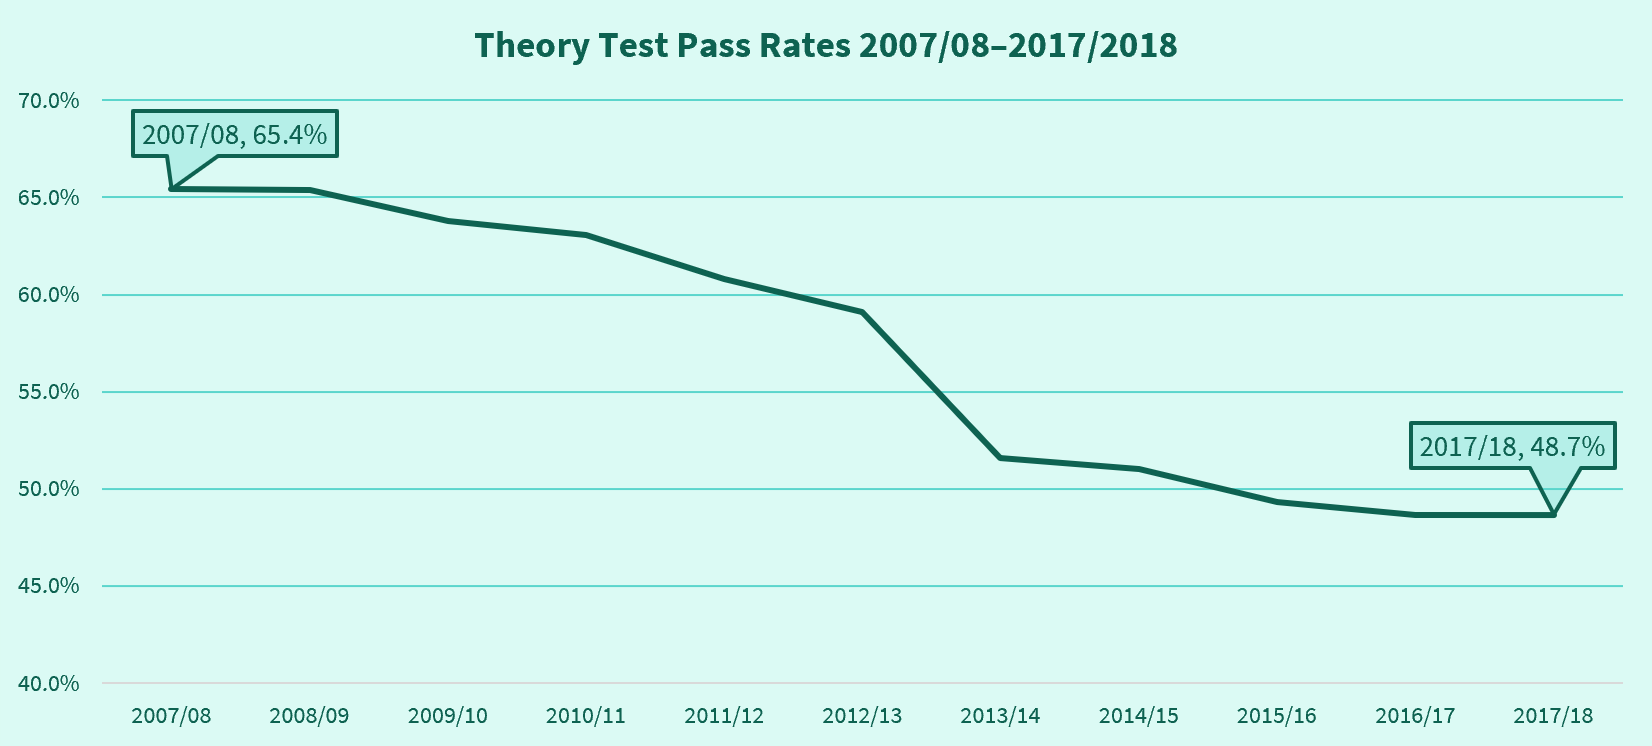 A chart showing the theory test pass rates from 2007/08 to 2017/18.